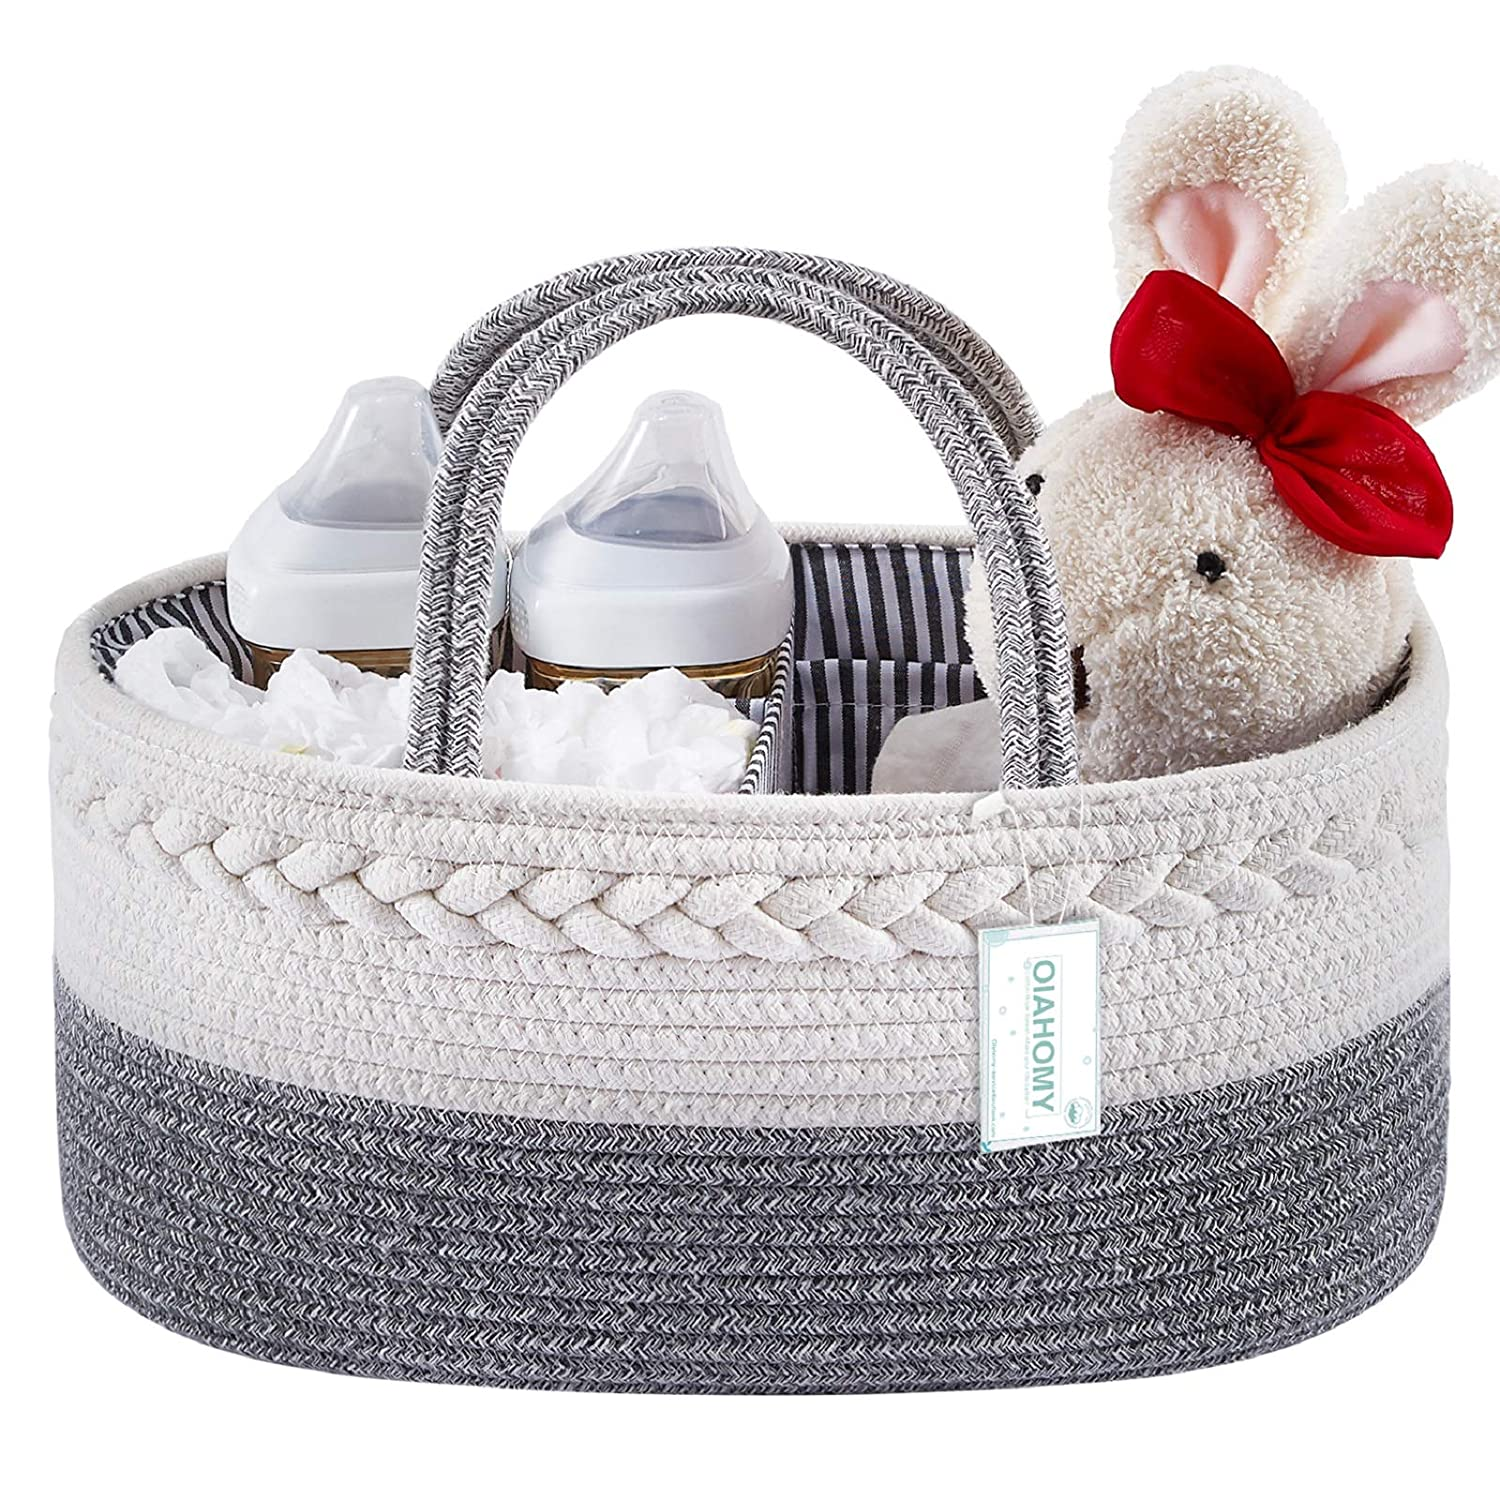 Baby Diaper Caddy Organizer-Baby Basket with Removable Divider Portable Tote Bag for Changing Table & Cars, Cotton Rope Basket Baby Shower Basket, Newborn Must Haves